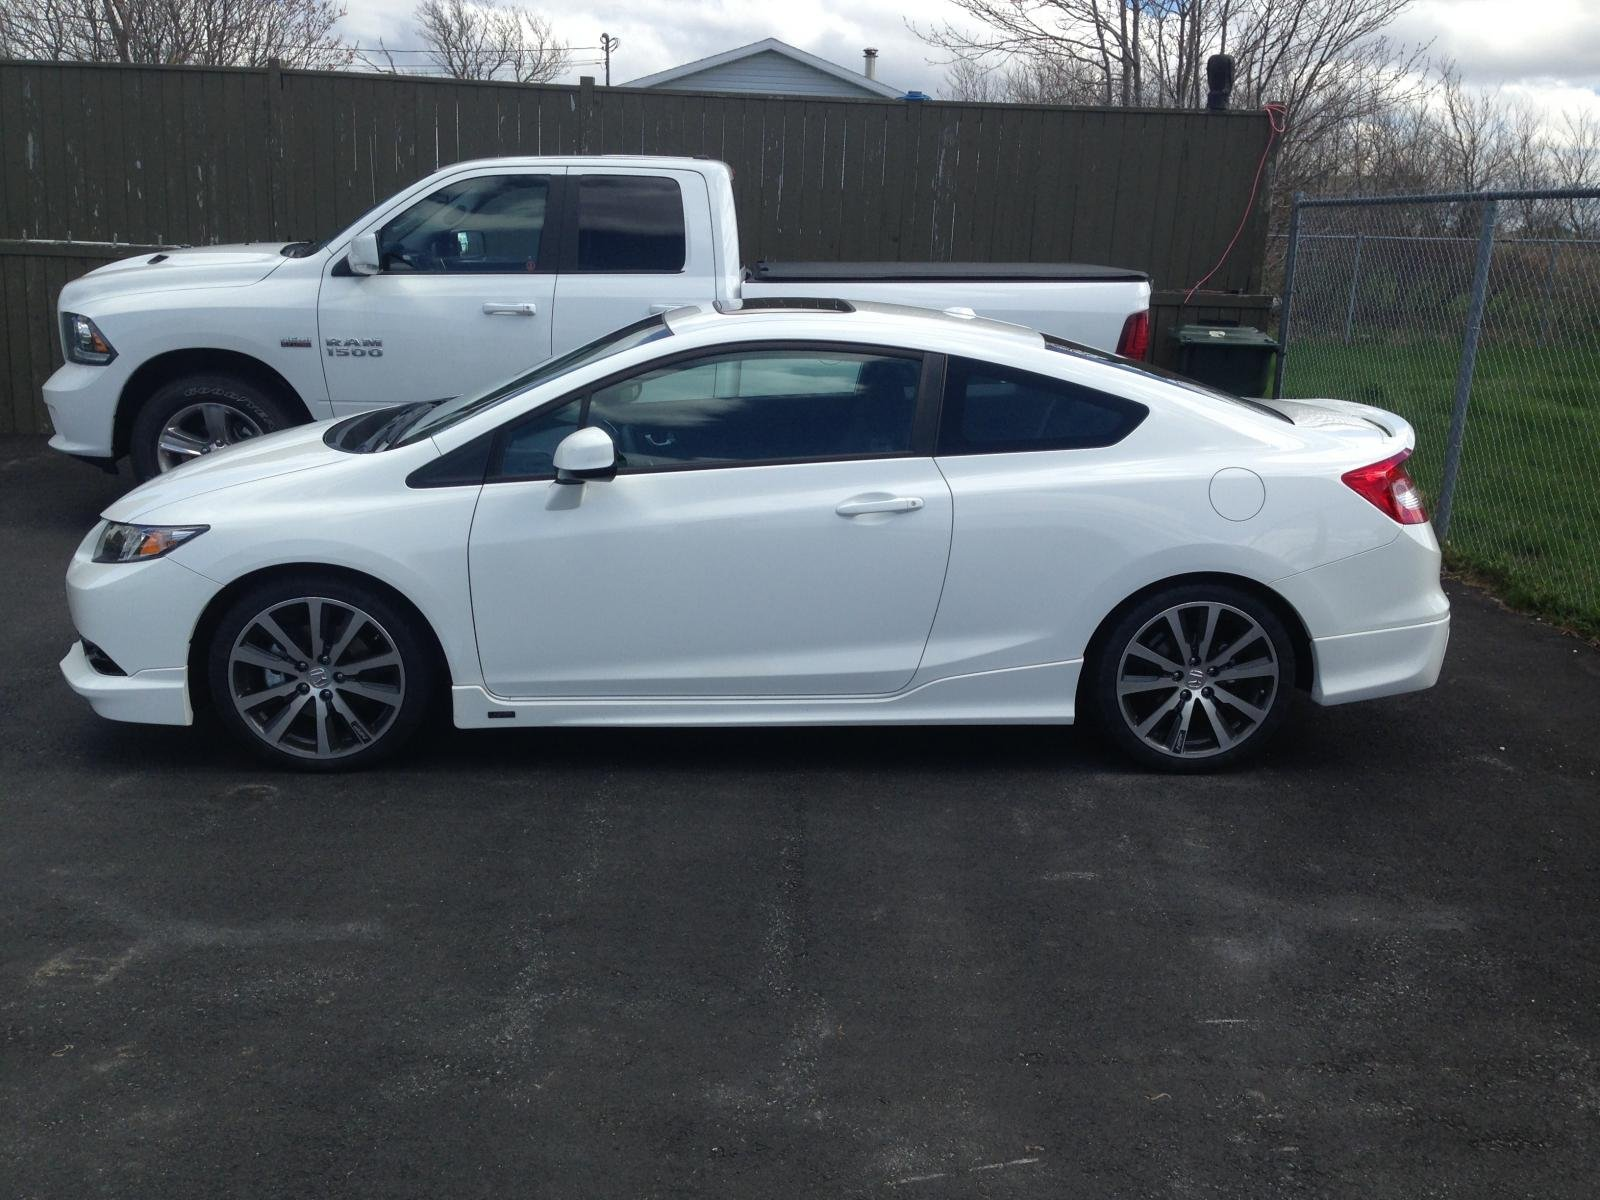 New civic si hfp owner